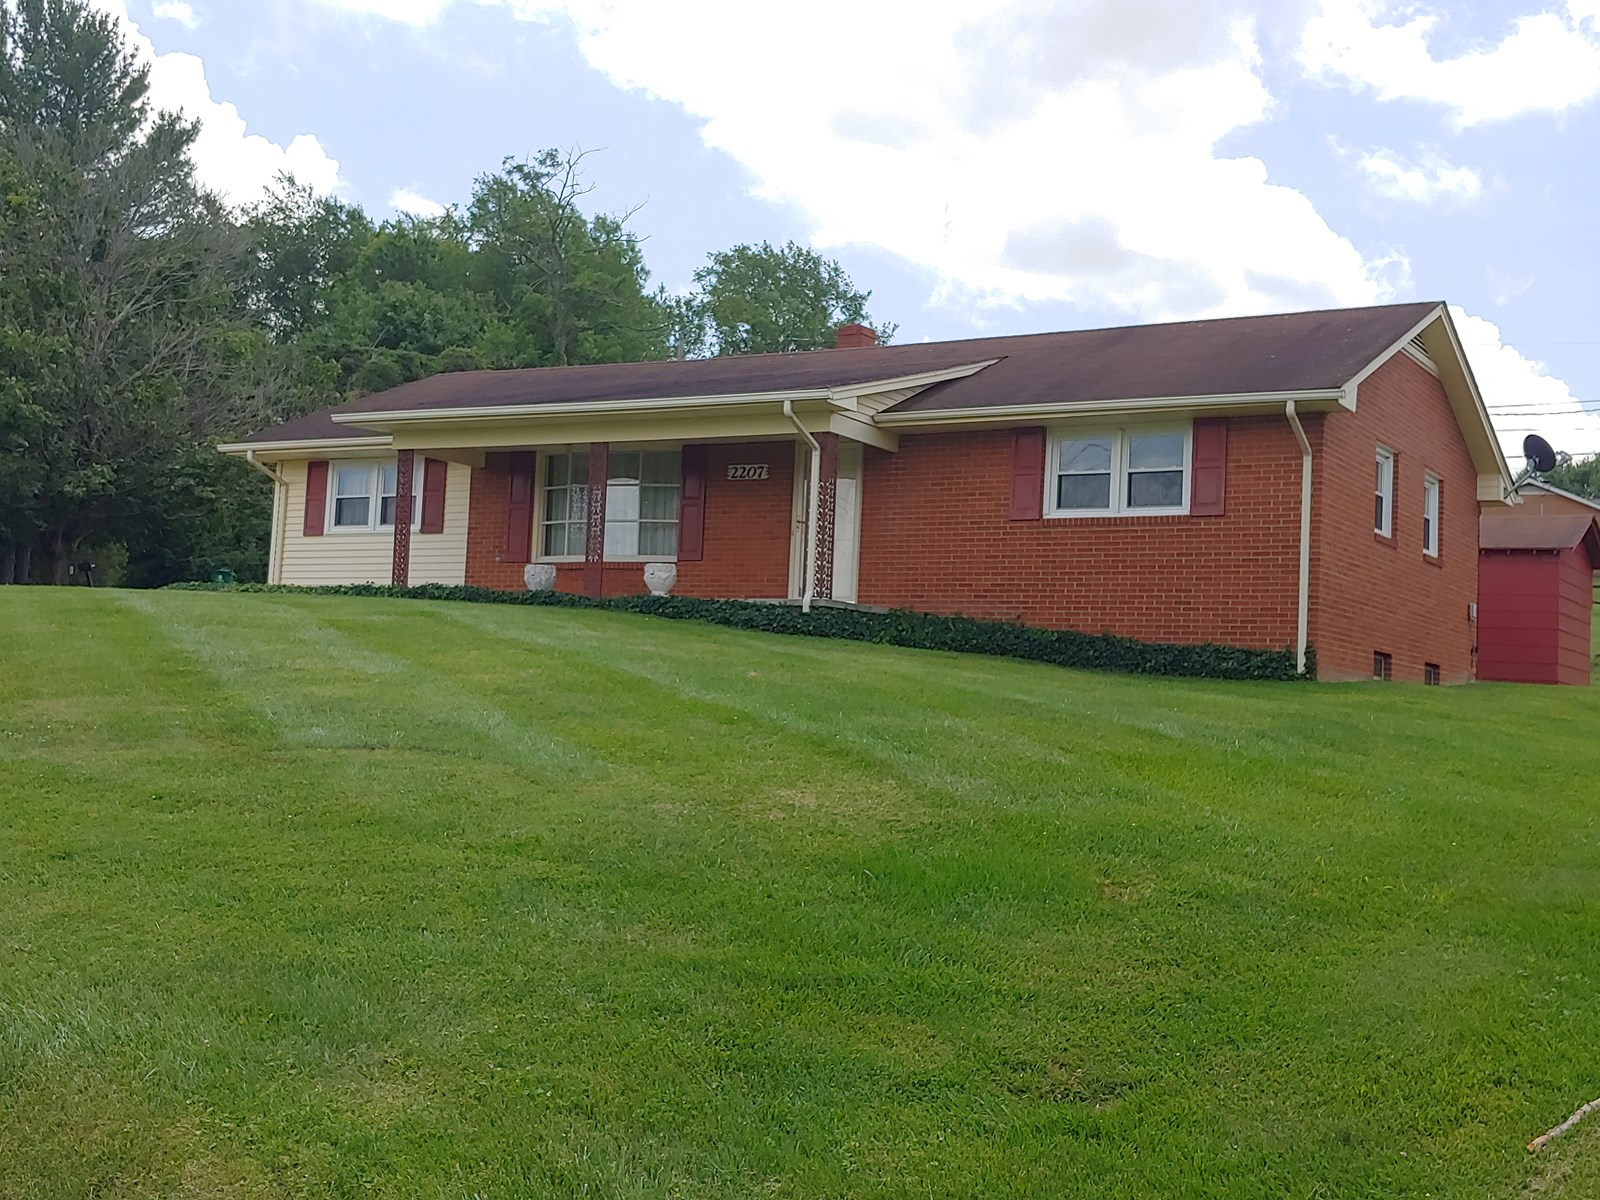 Sweet Brick Home for Sale in Christiansburg VA!